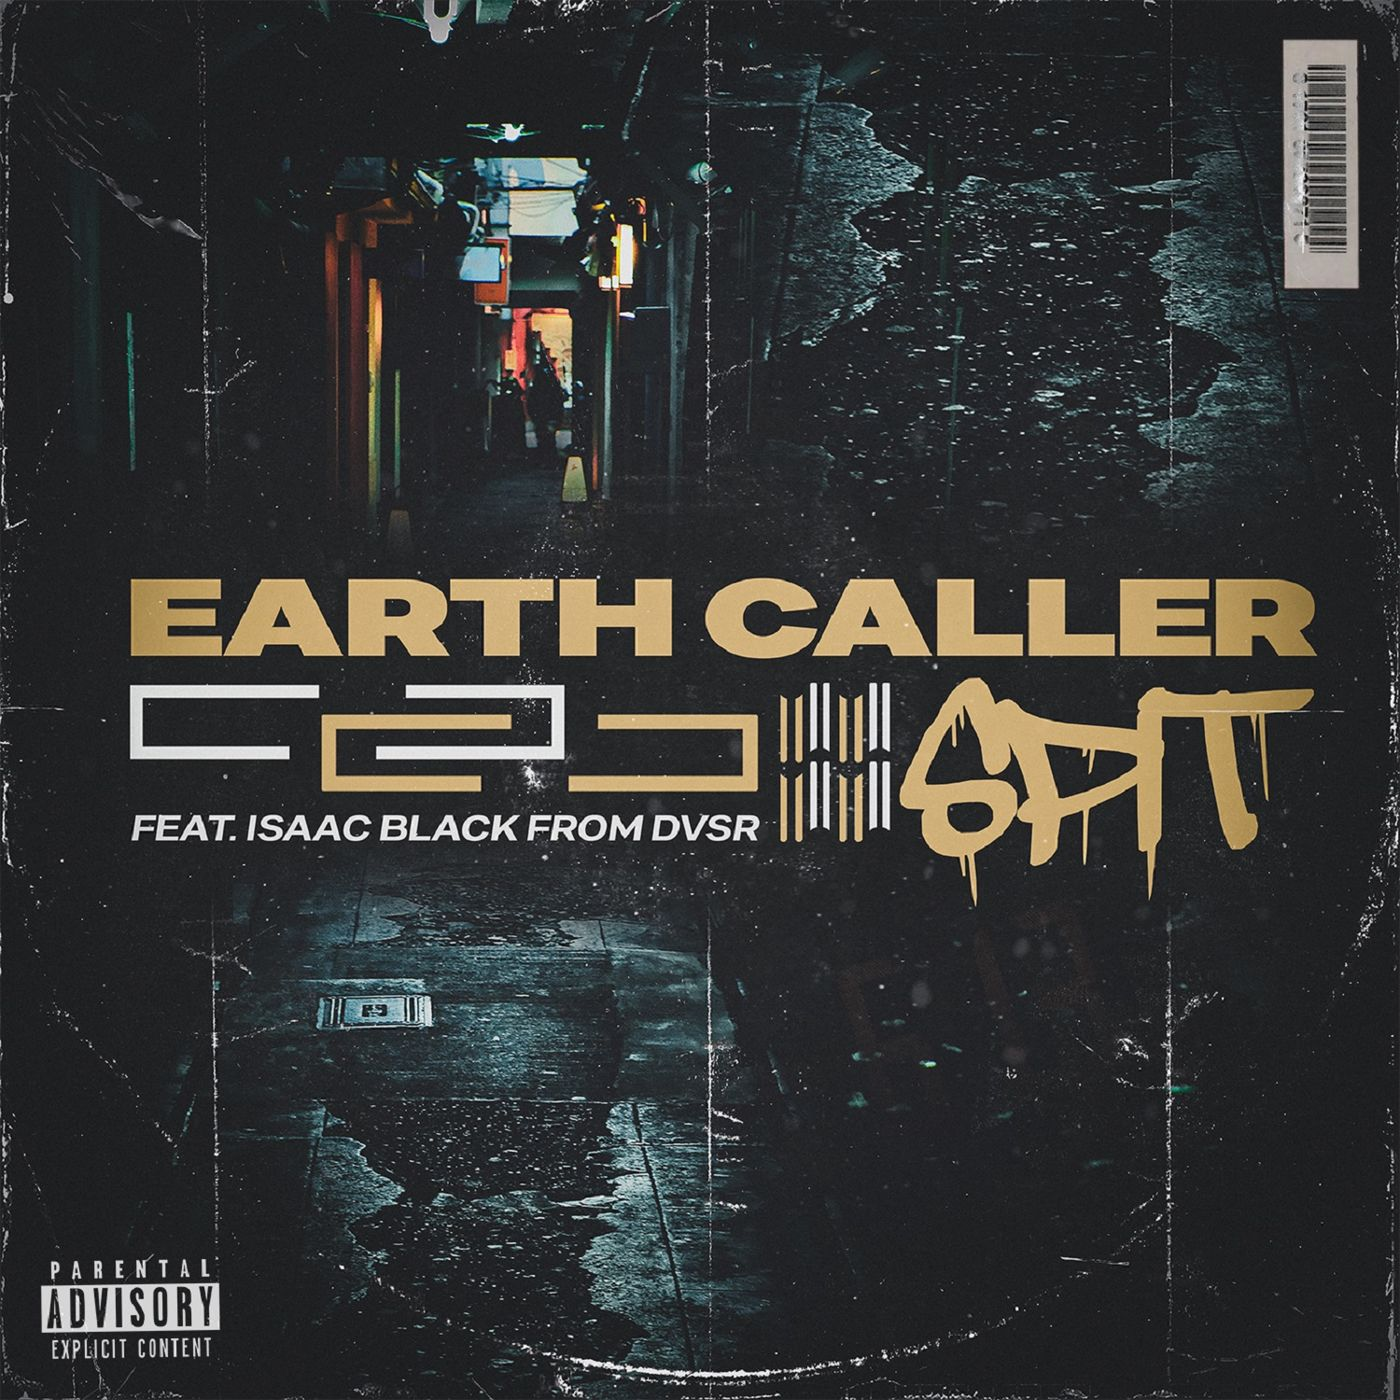 Earth Caller - Spit [single] (2019)